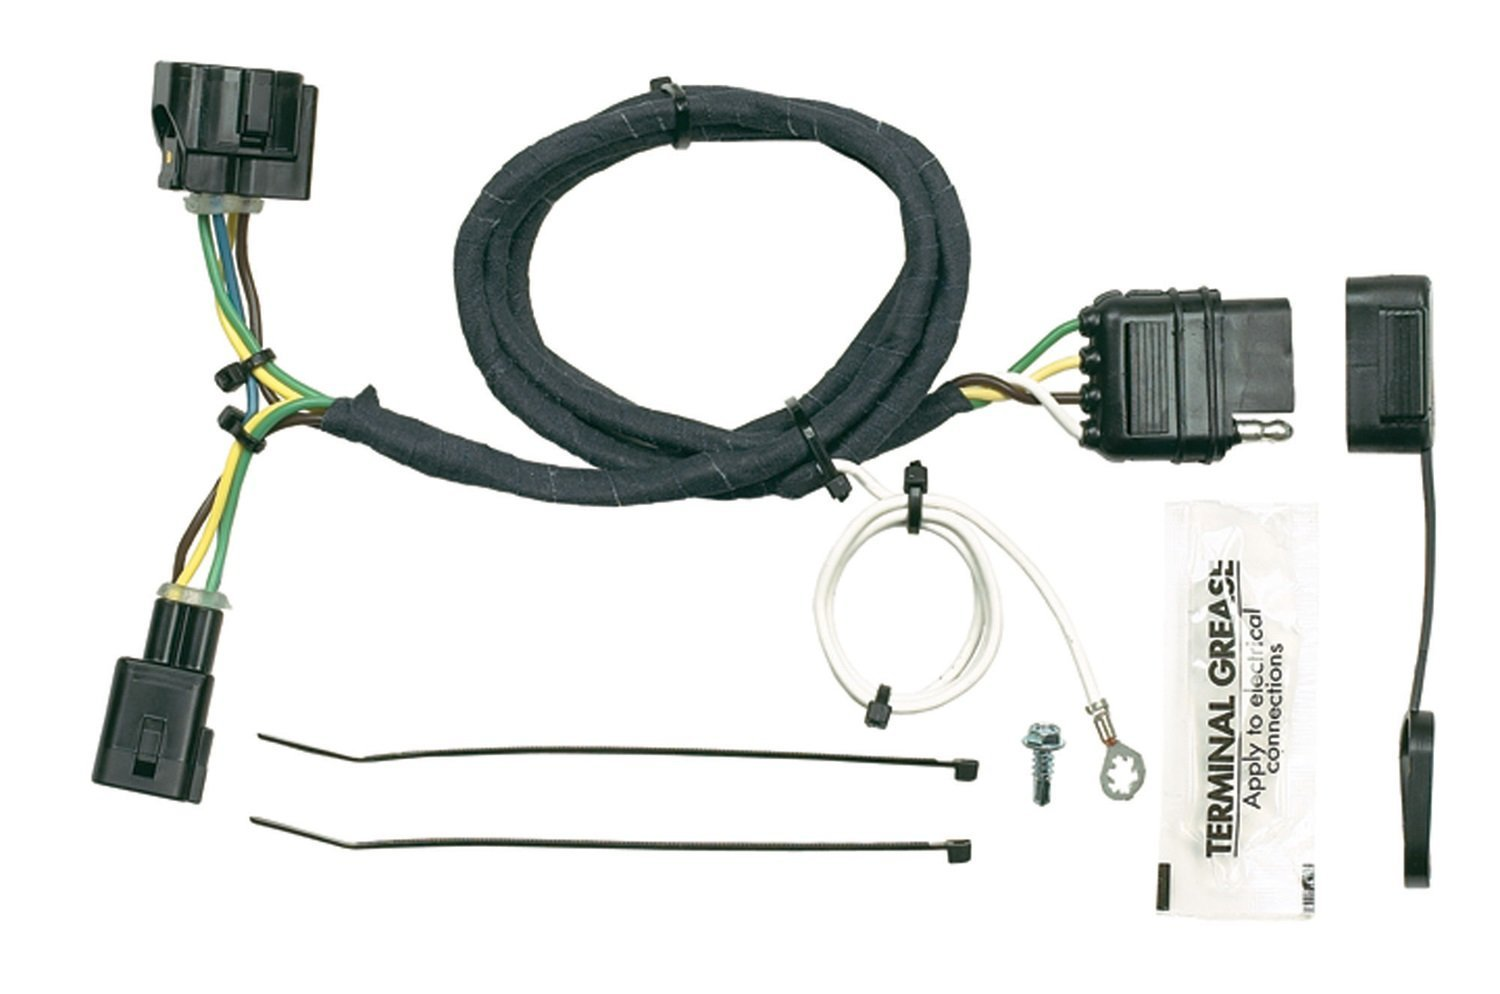 Trailer Wiring Connectors For Jeeps Library Simple Hopkins 42615 Plug In Vehicle Kit Pico 42475 42115 19982004 6952pt Jeep